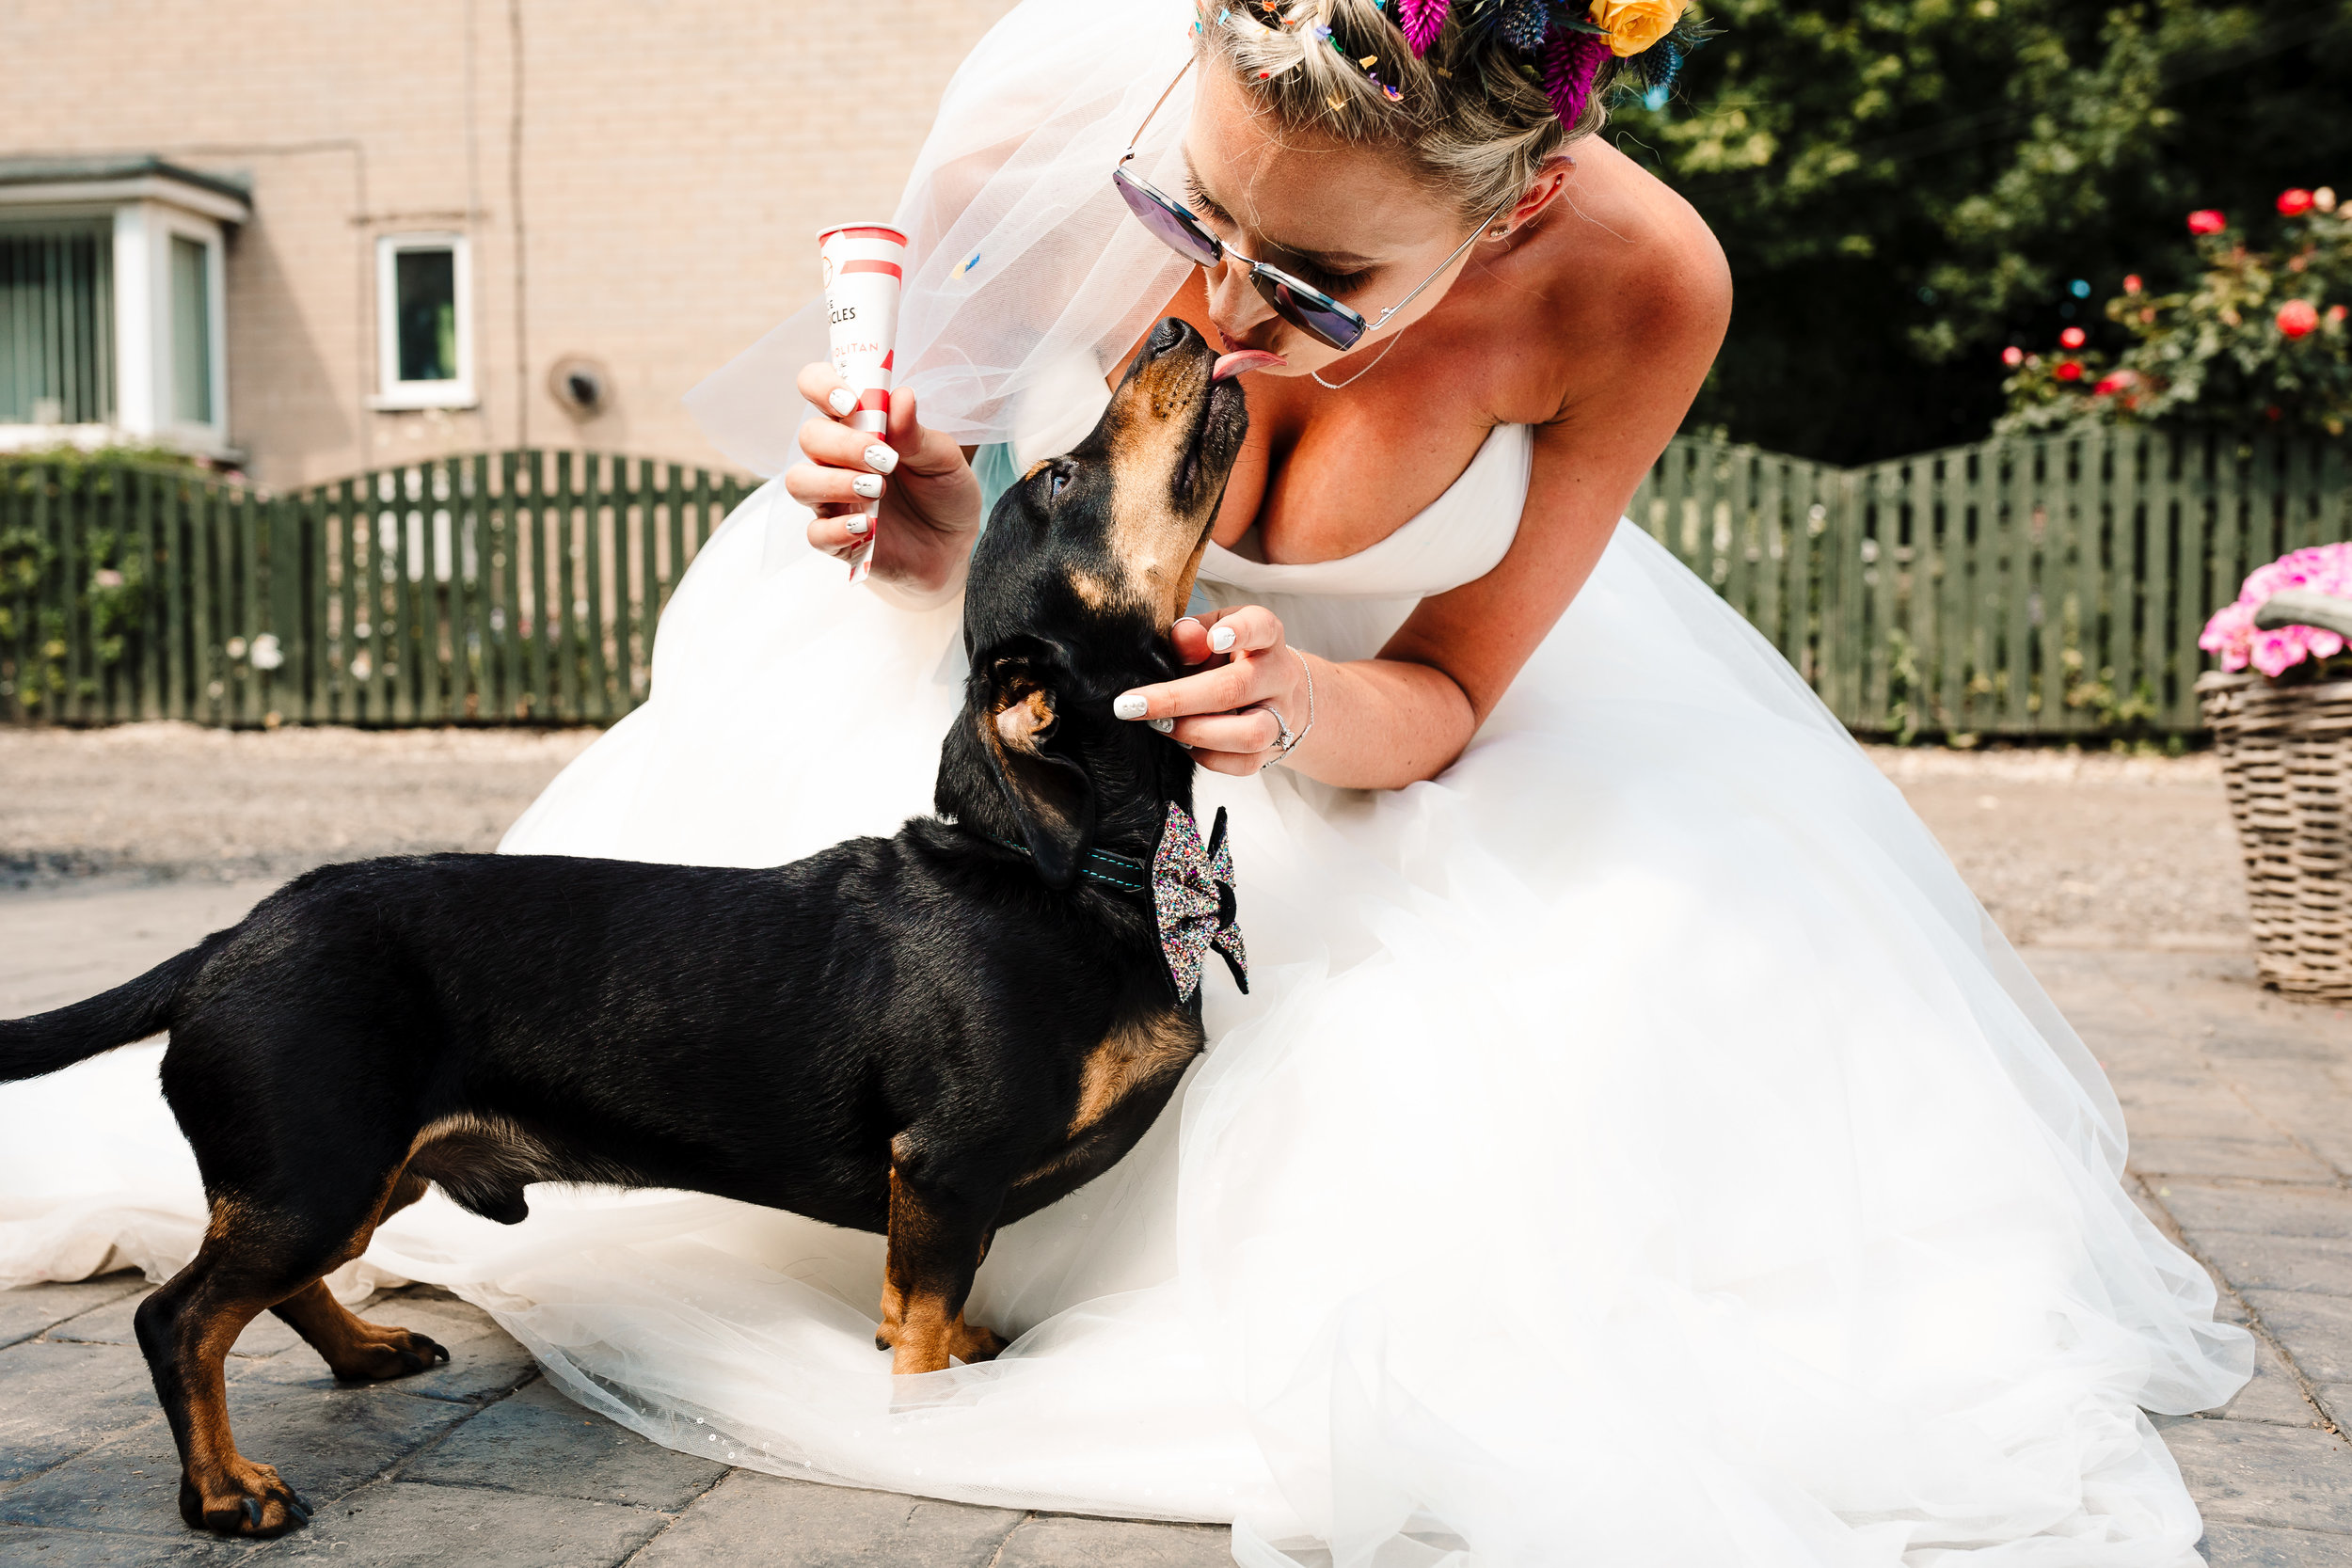 A bride eating an ice lolly and getting kisses from her dog